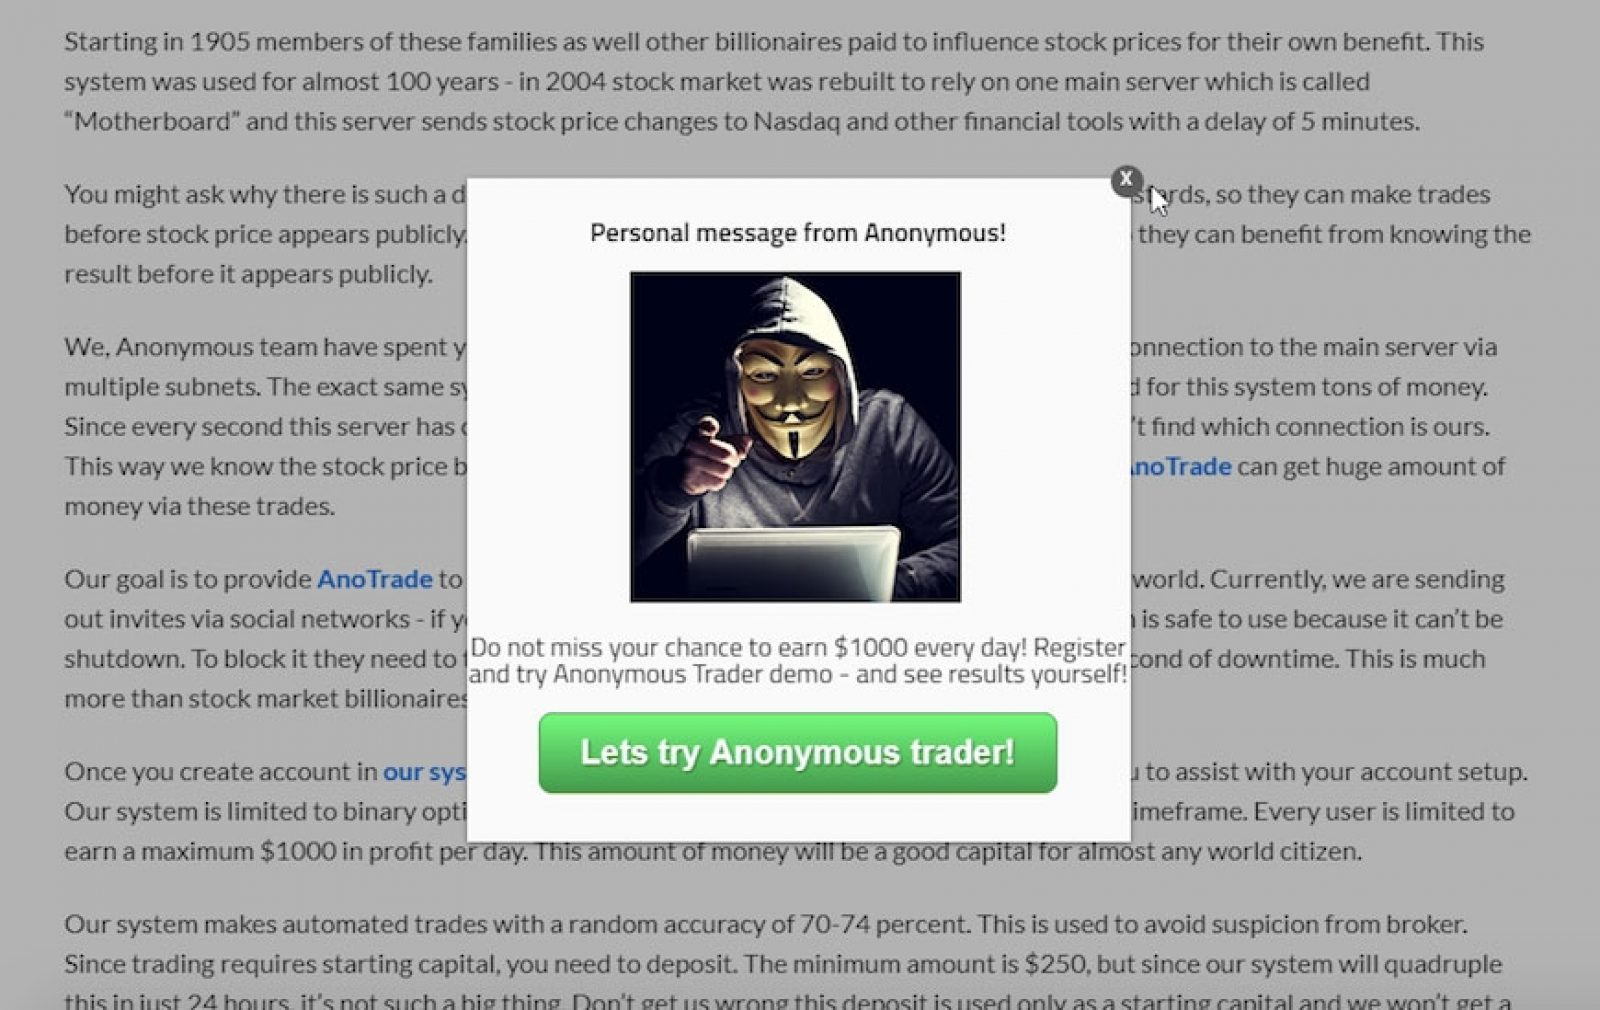 "Advertisers who trumpeted ""Anonymous shocks Donald Trump by revealing system which made him rich!"" offered access to what they portrayed as a stock-trading tool promoted by the hacker collective Anonymous. They sought a minimum deposit of $250 and said ""our system will quadruple this in just 24 hours."" The FBI has cited this type of scheme as a common vehicle for fraud and identity theft."